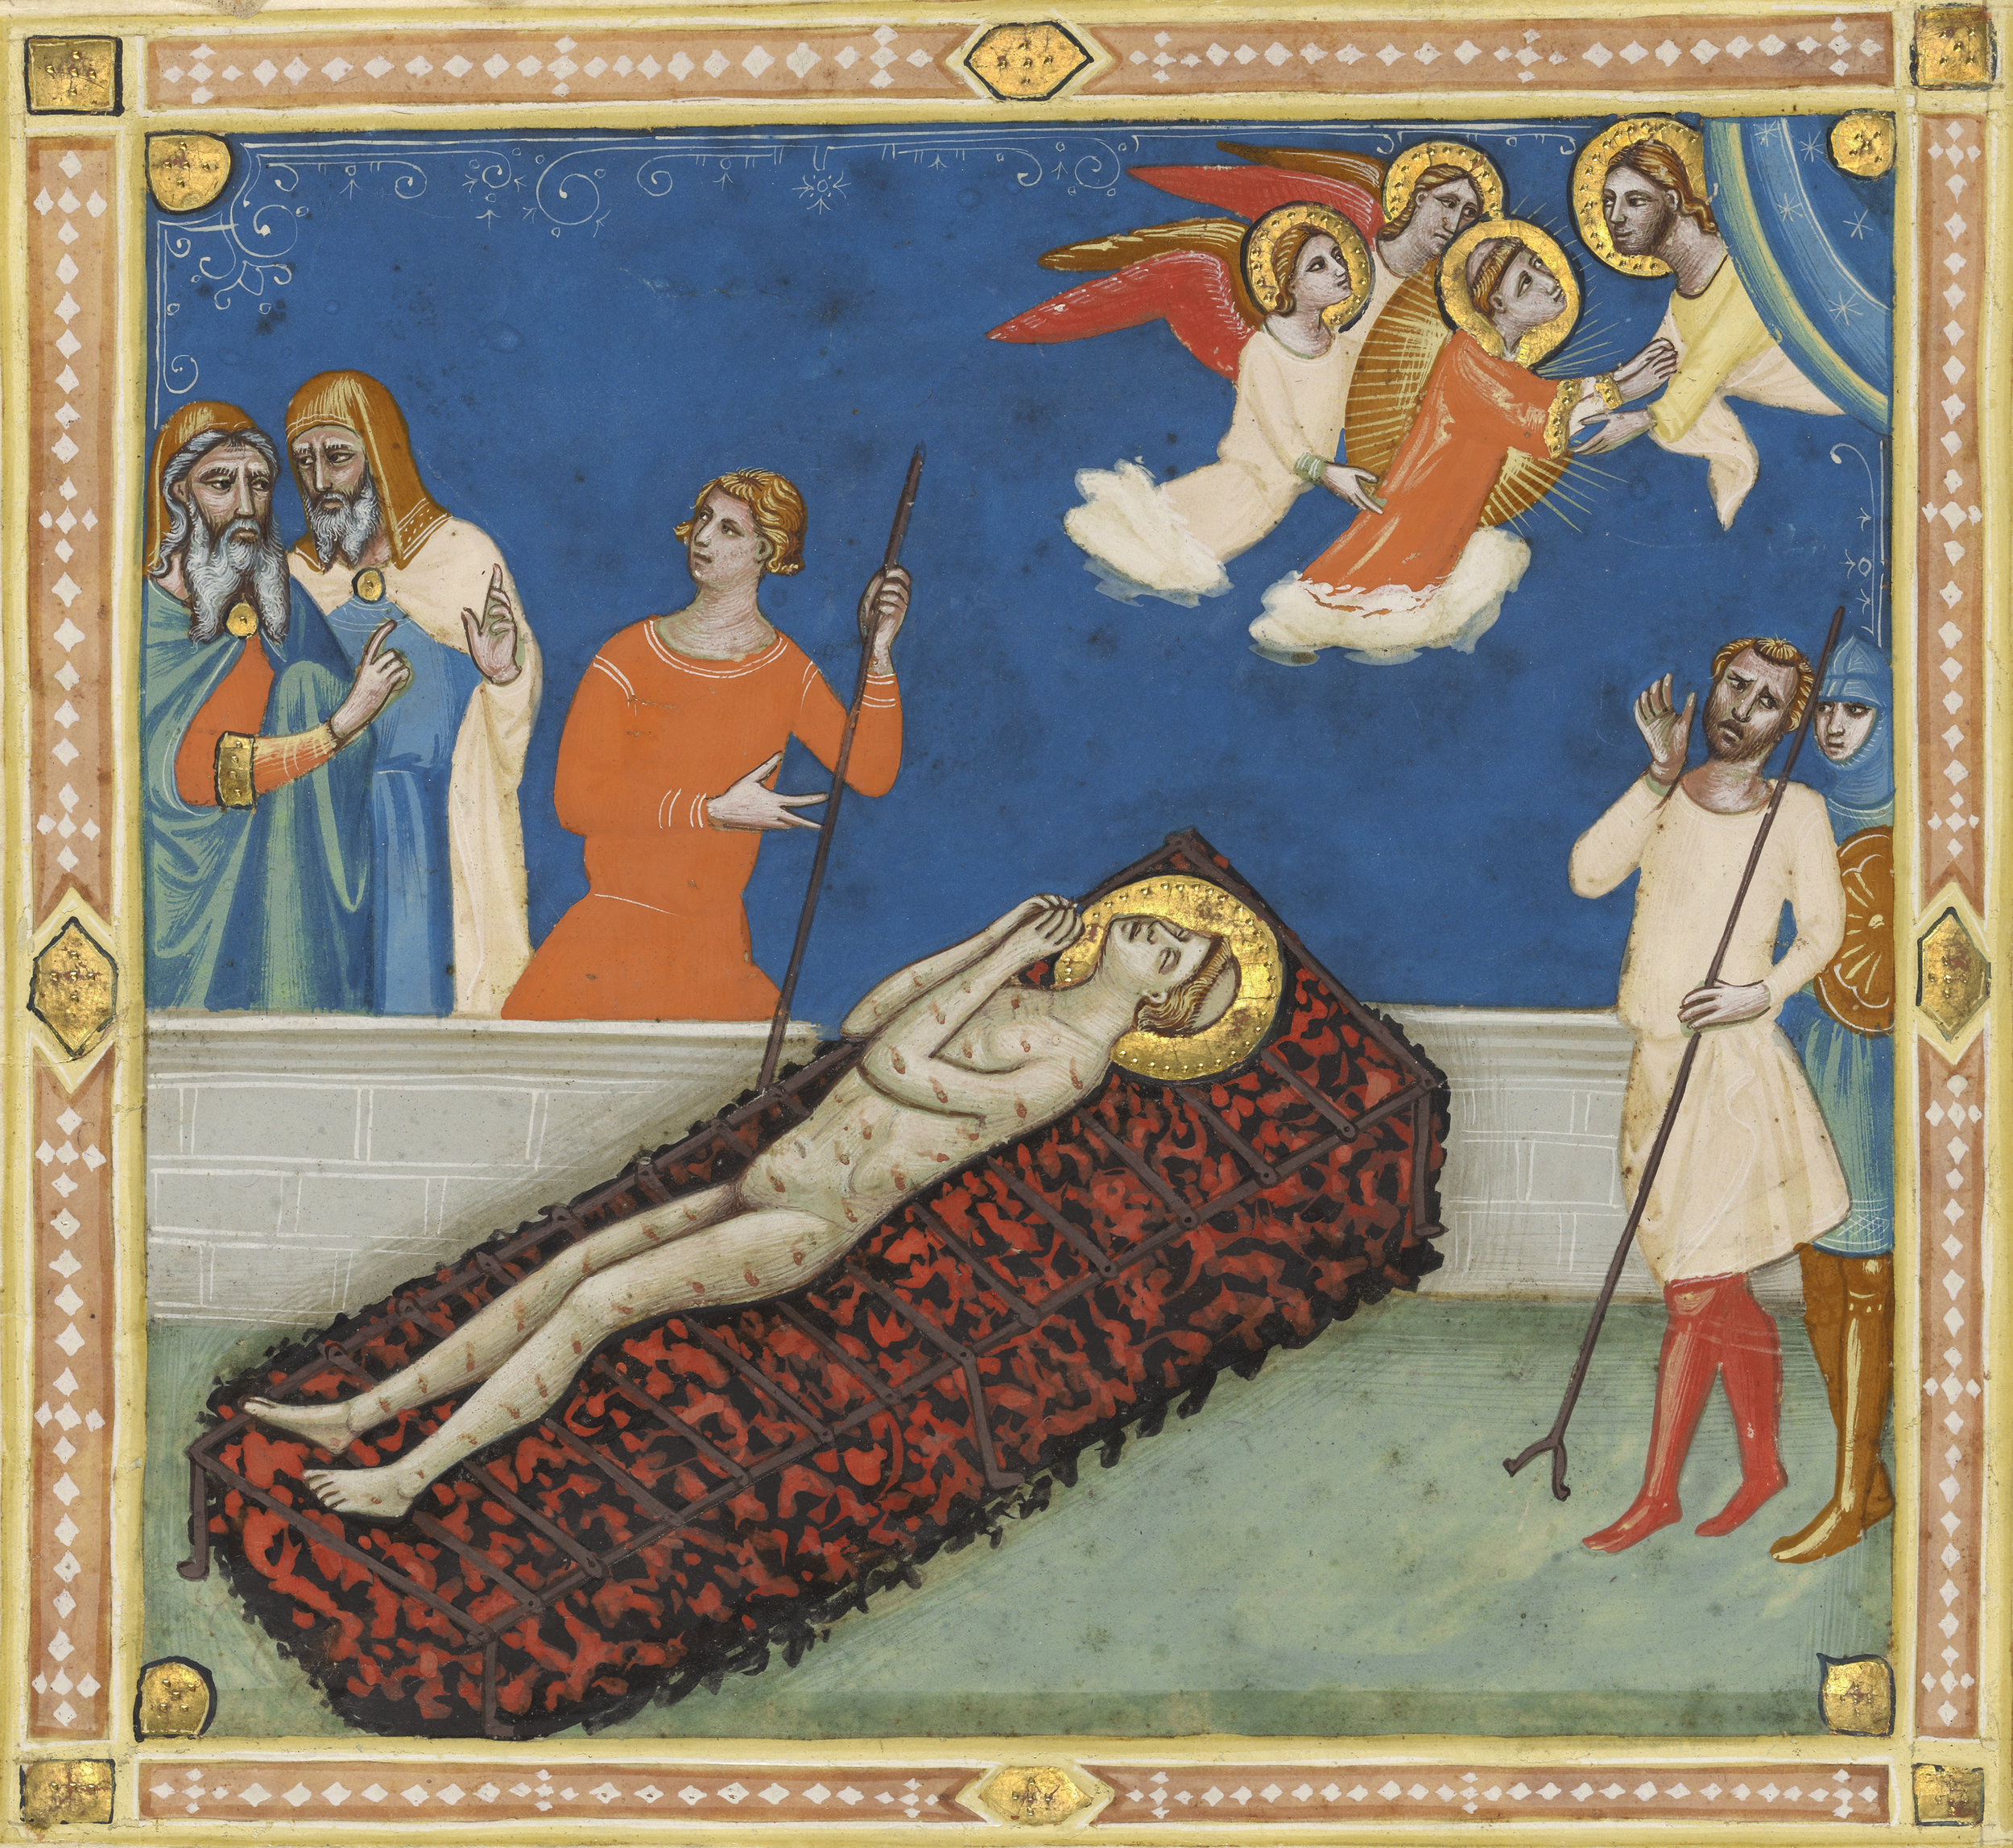 """The Martyrdom of Saint Lawrence"" by Pacino di Bonaguida, circa 1340. Digital image courtesy of The J. Paul Getty Museum's Open Content Program."